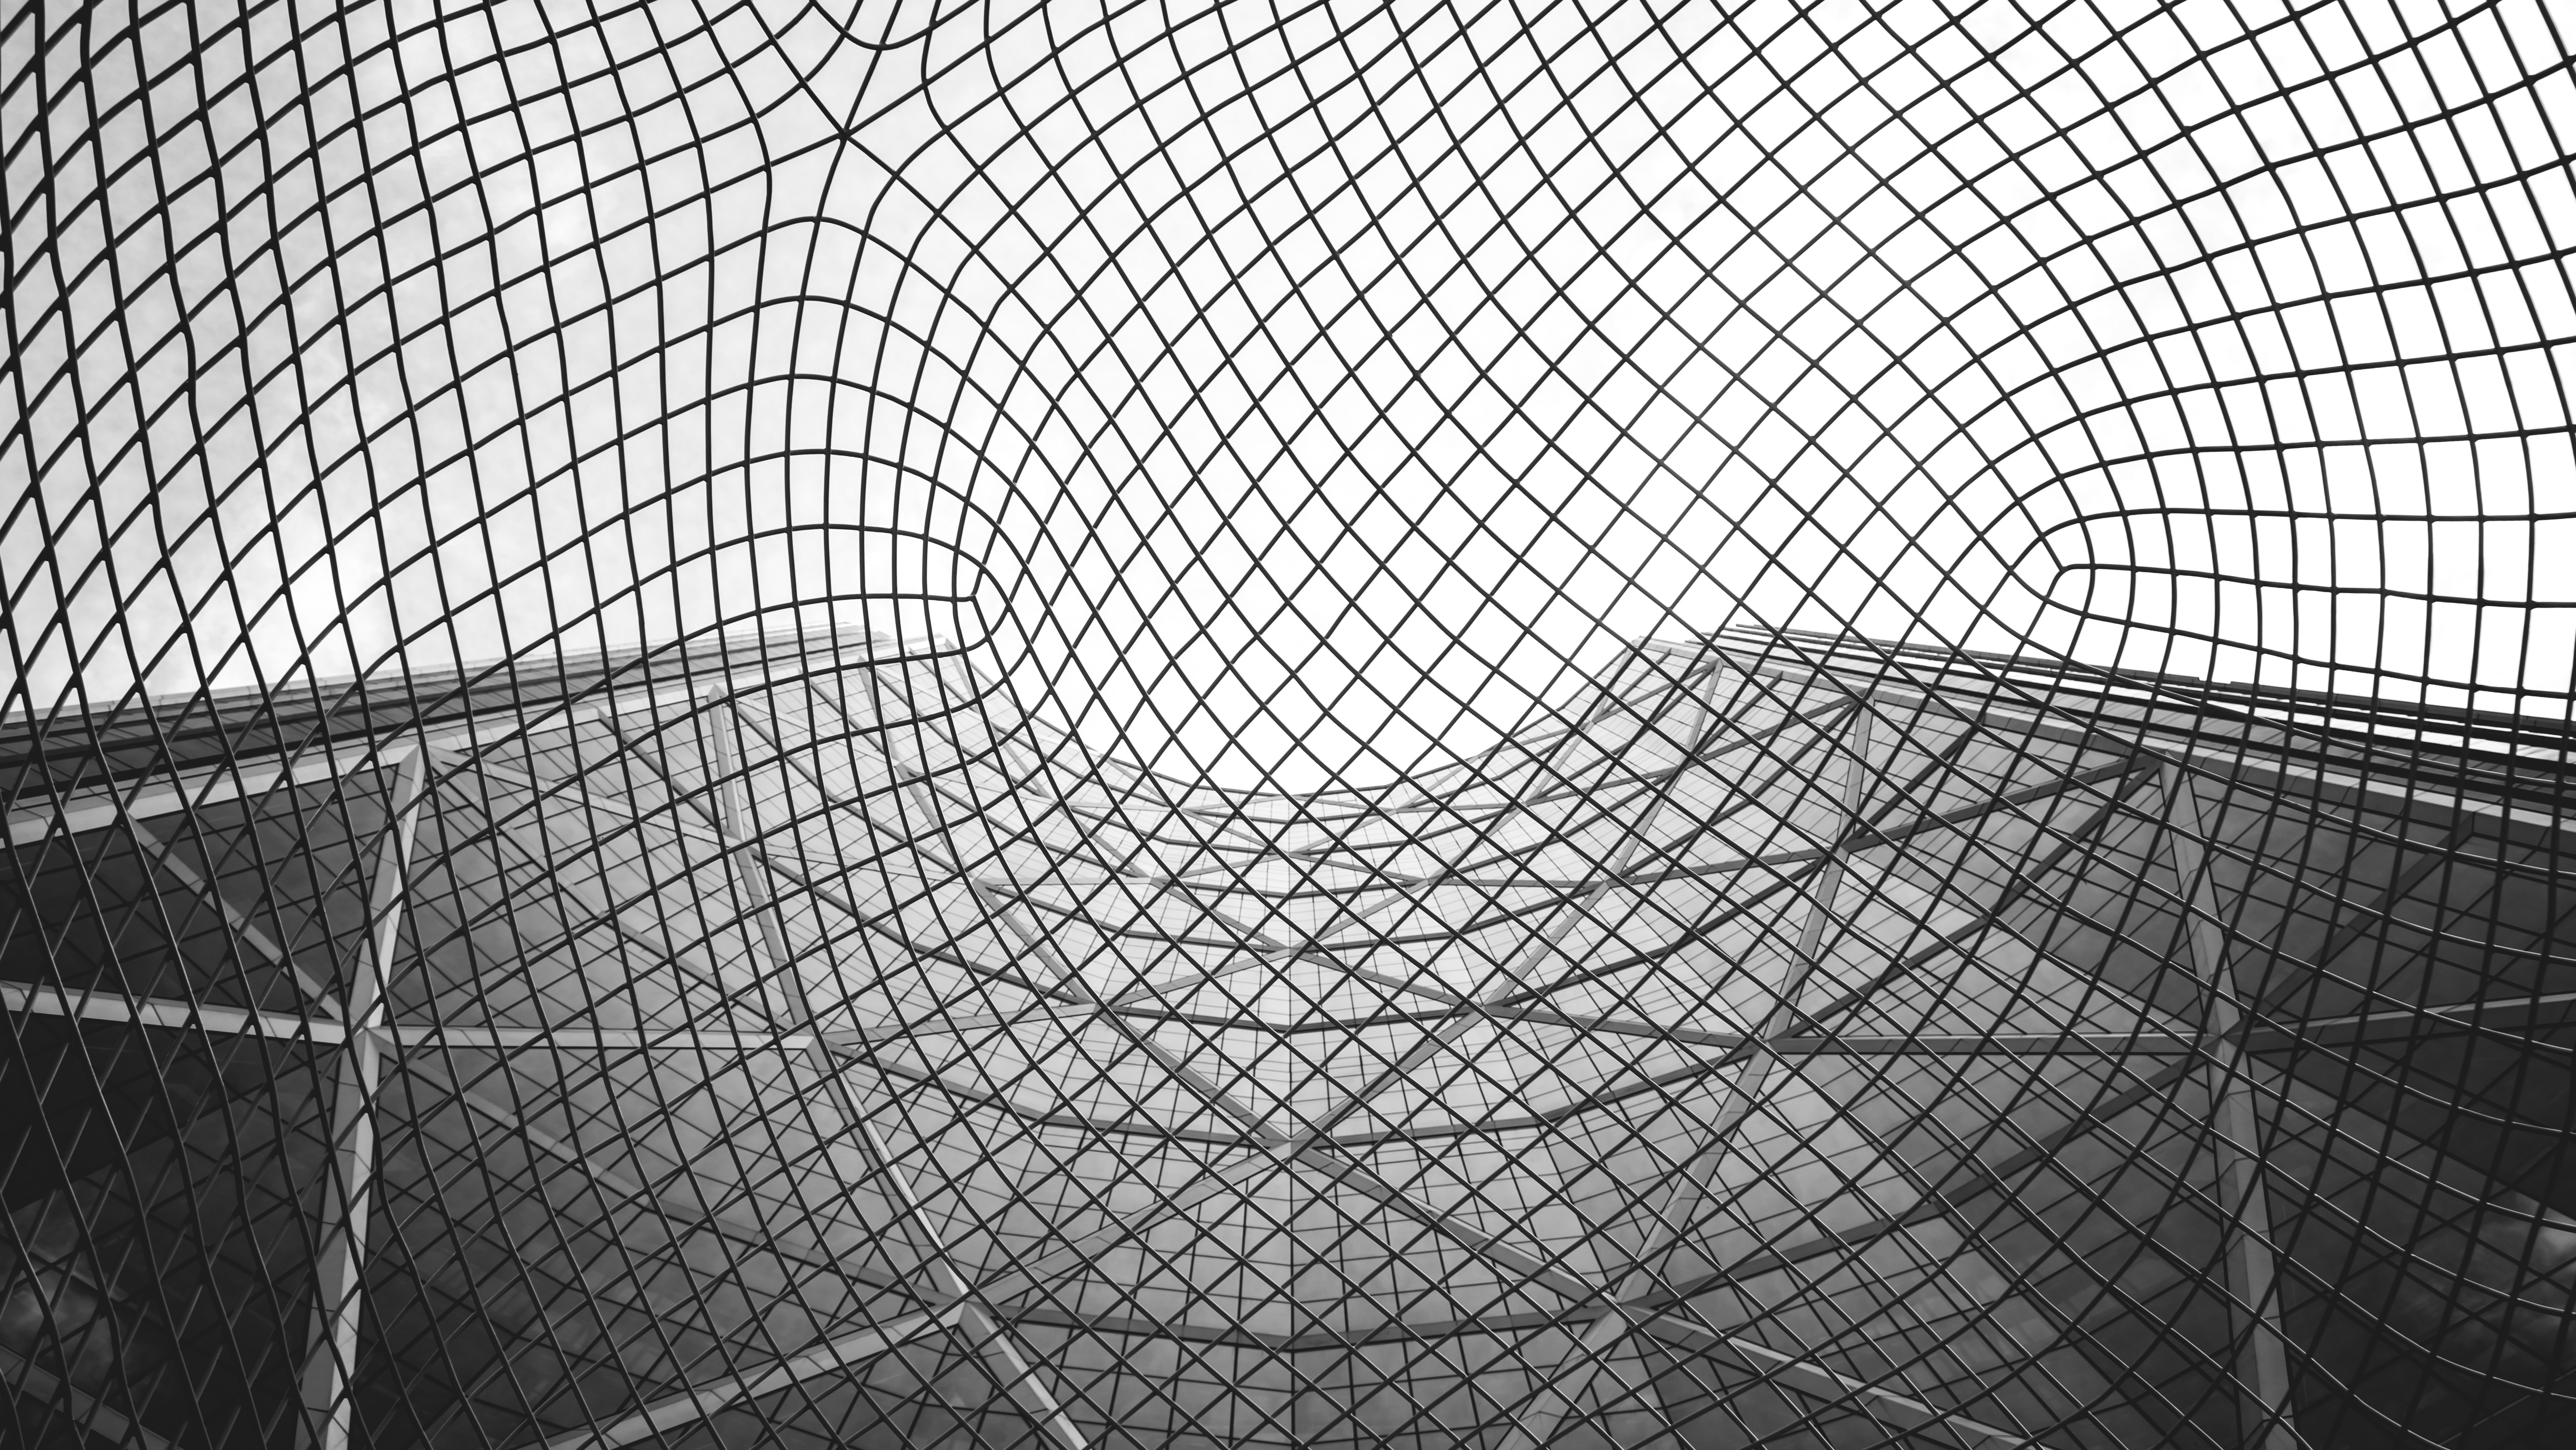 grayscale photography of net